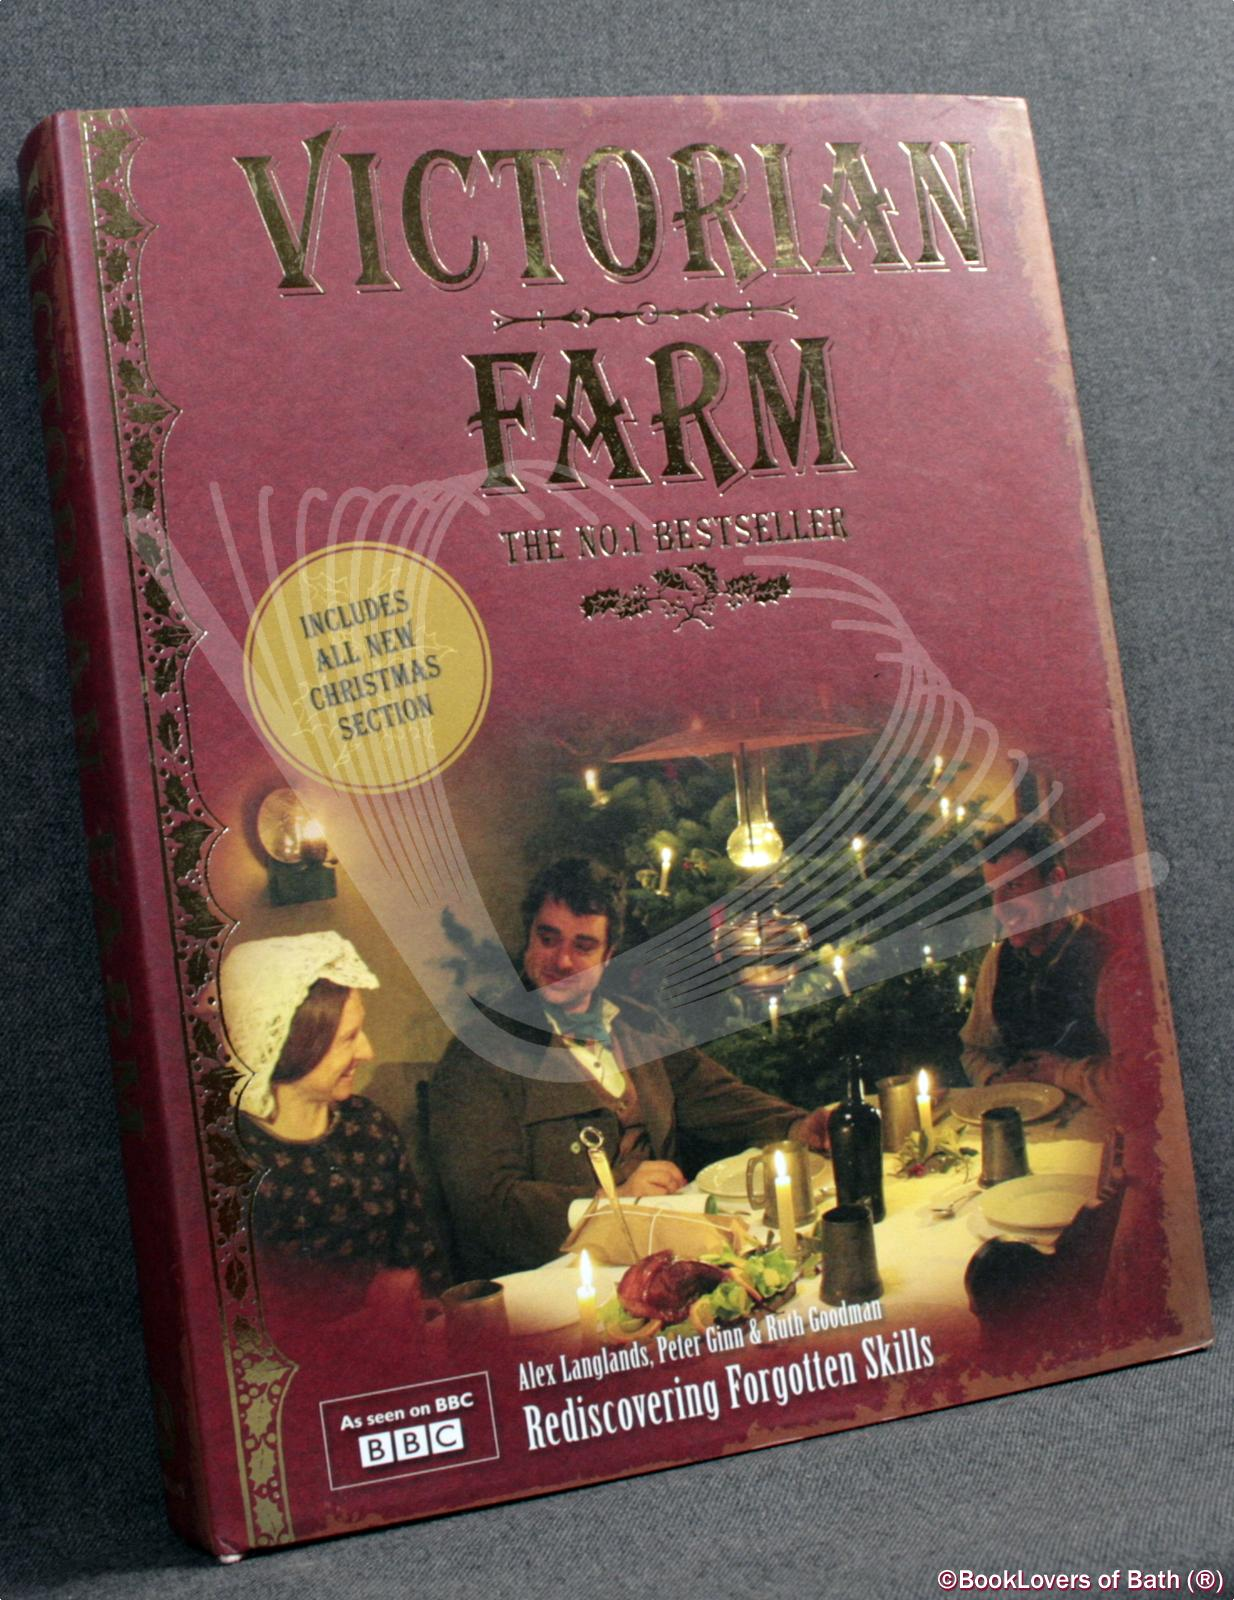 Victorian Farm: Rediscovering Forgotten Skills - Alex Langlands, Peter Ginn & Ruth Goodman